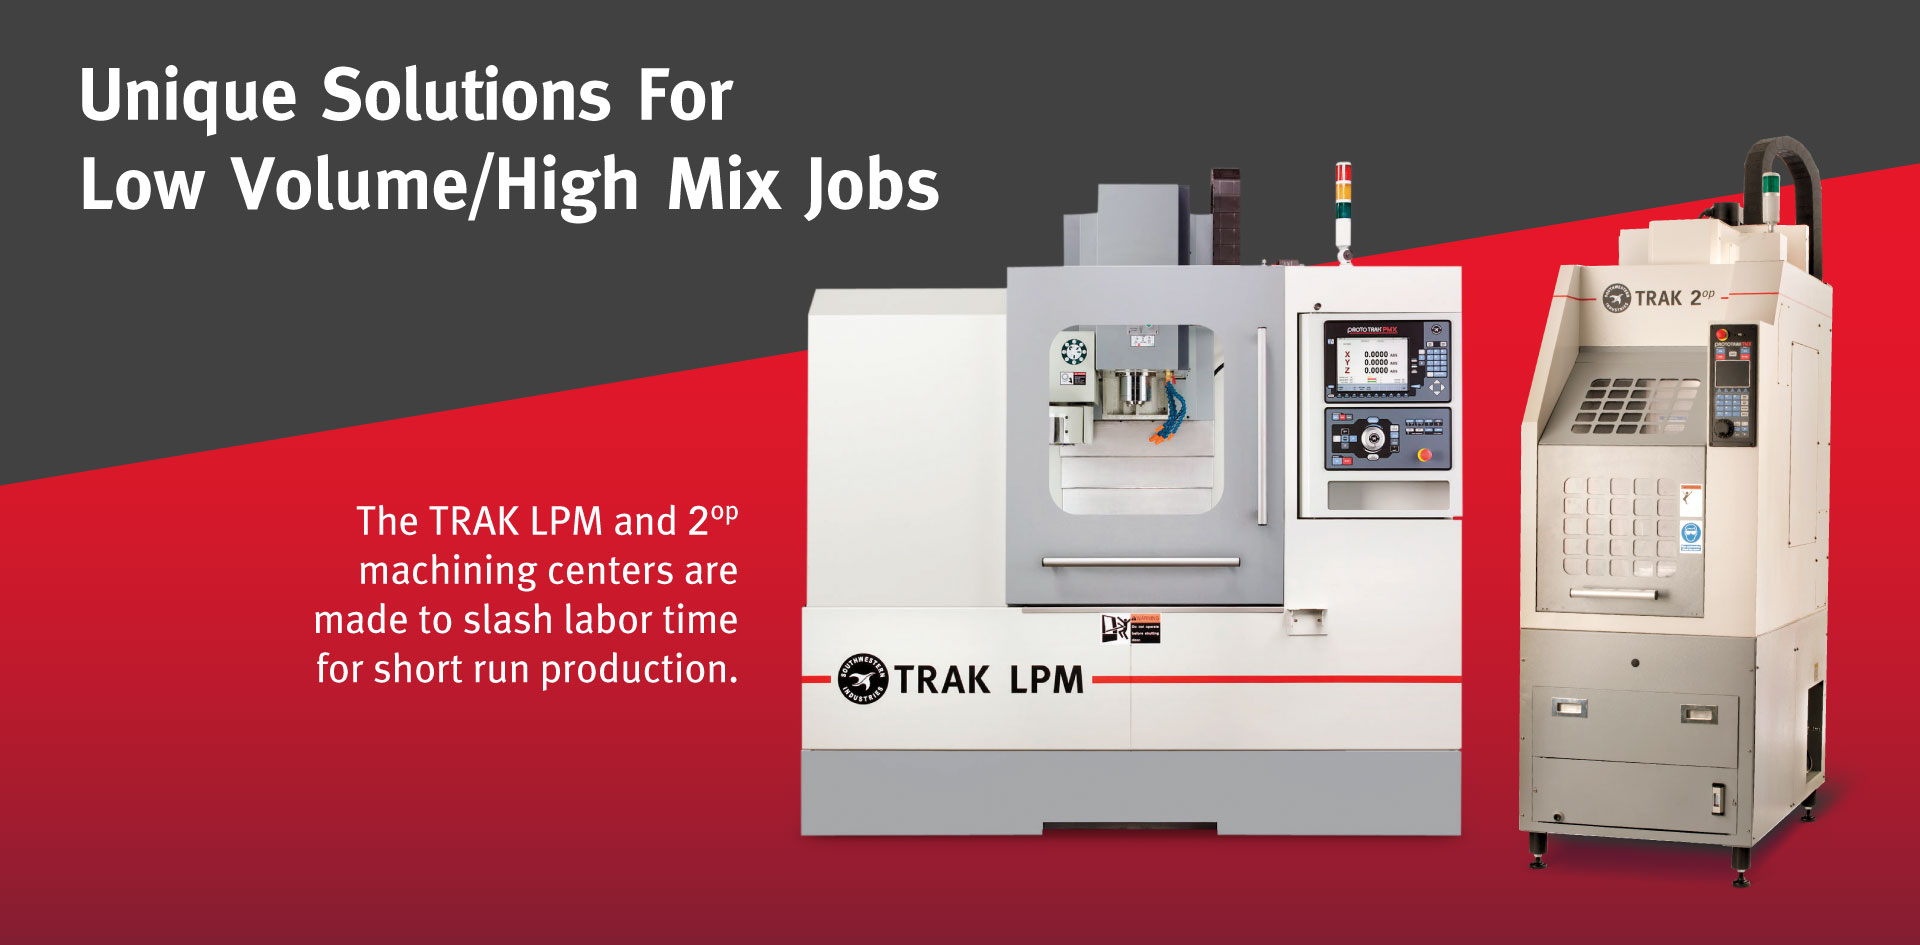 TRAK Vertical Machining Centers - Unique Solutions for Low Volume/High Mix Jobs